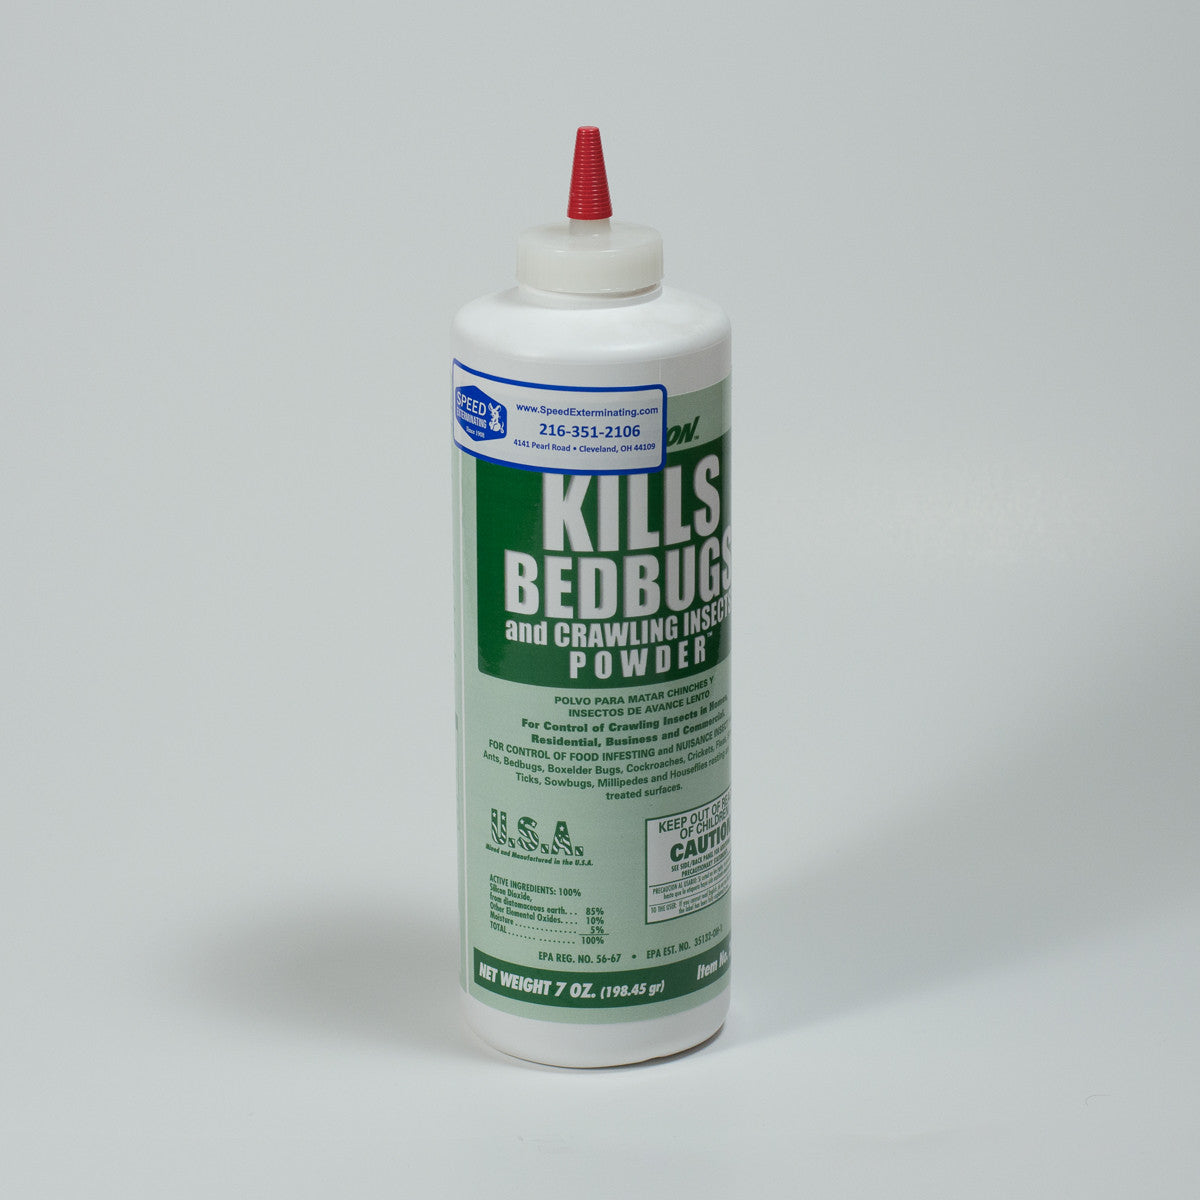 JT Eaton Bed Bug Powder - 7 oz.